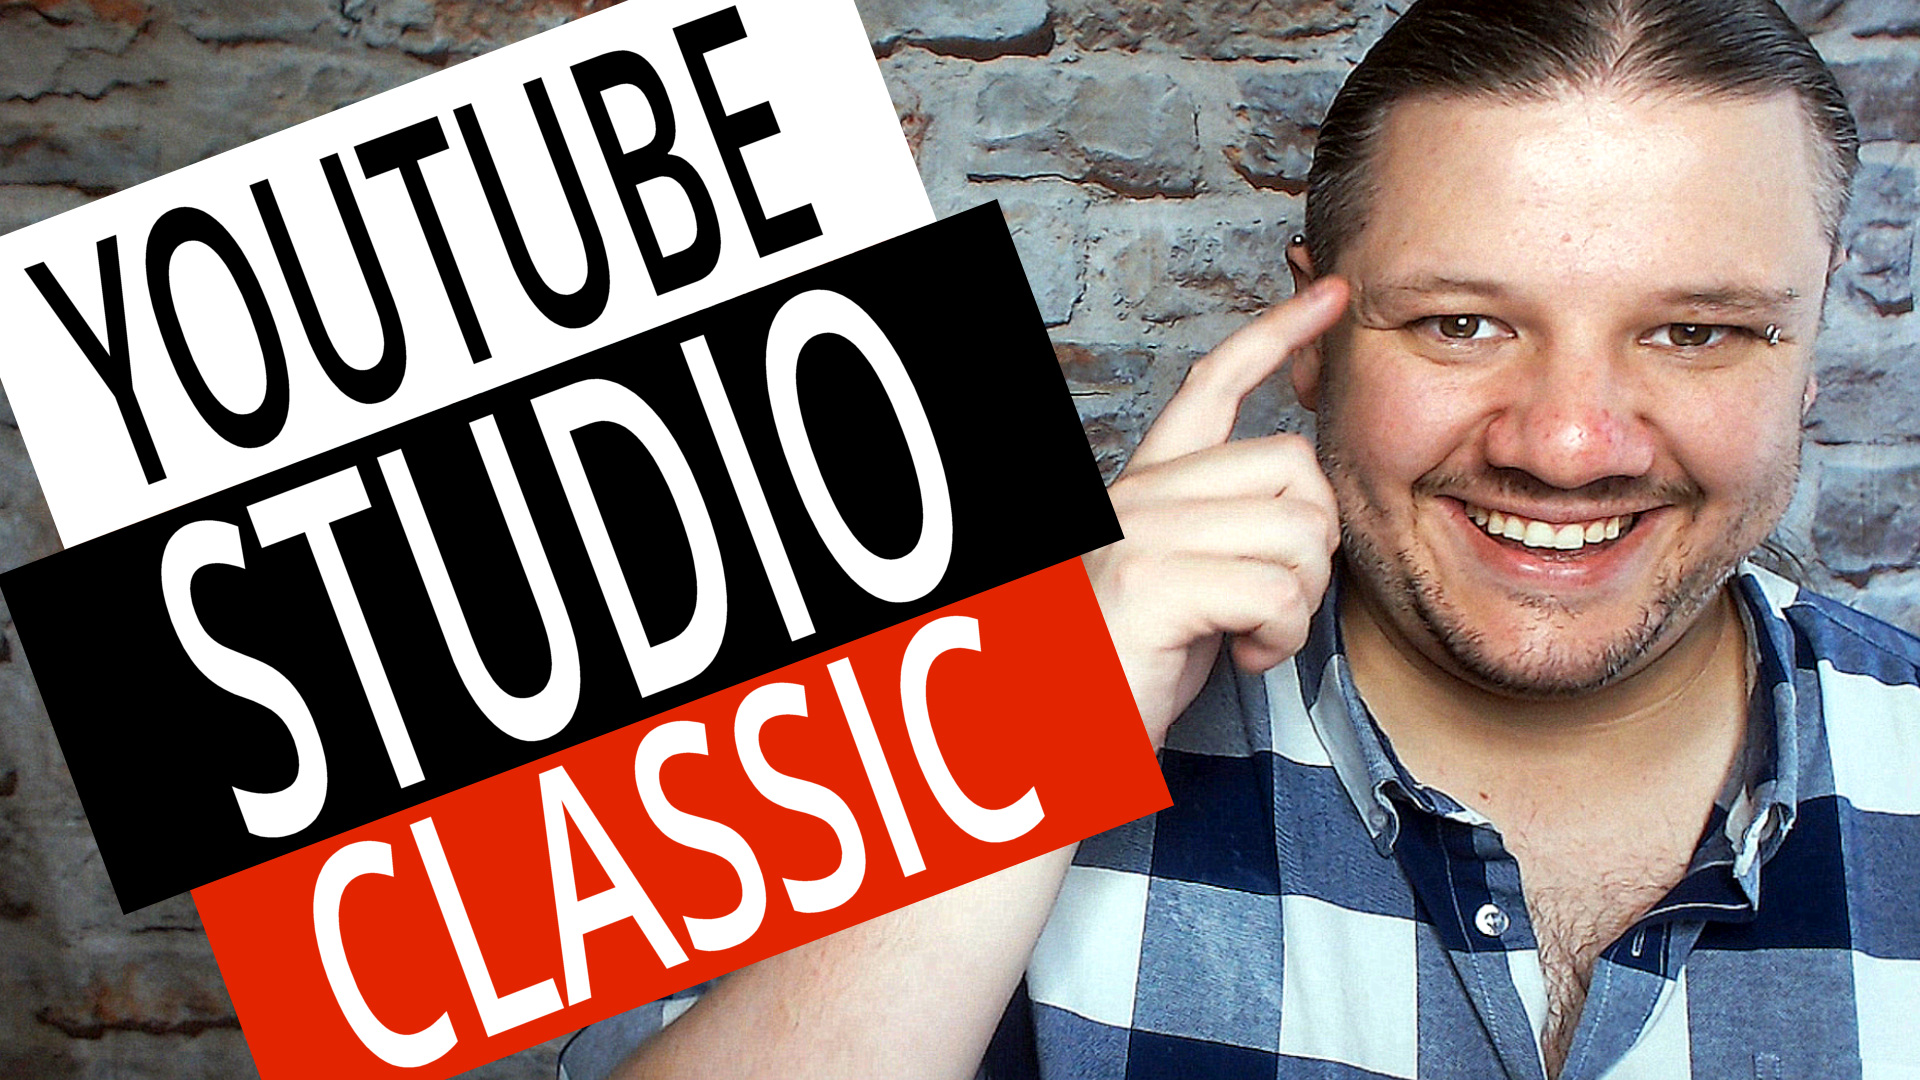 How To Access YouTube Studio Classic Mode,youtube creator studio,creator studio,classic youtube studio,creator studio classic youtube,youtube creators studio,youtube creator studio classic,youtube studio beta,youtube creator studio beta,youtube creator studio 2018,youtube studio classic mode,old youtube studio,creator studio classic,creator studio classic vs youtube studio beta,classic creator studio,youtube studio 2019,youtube studio classic 2019,alan spicer